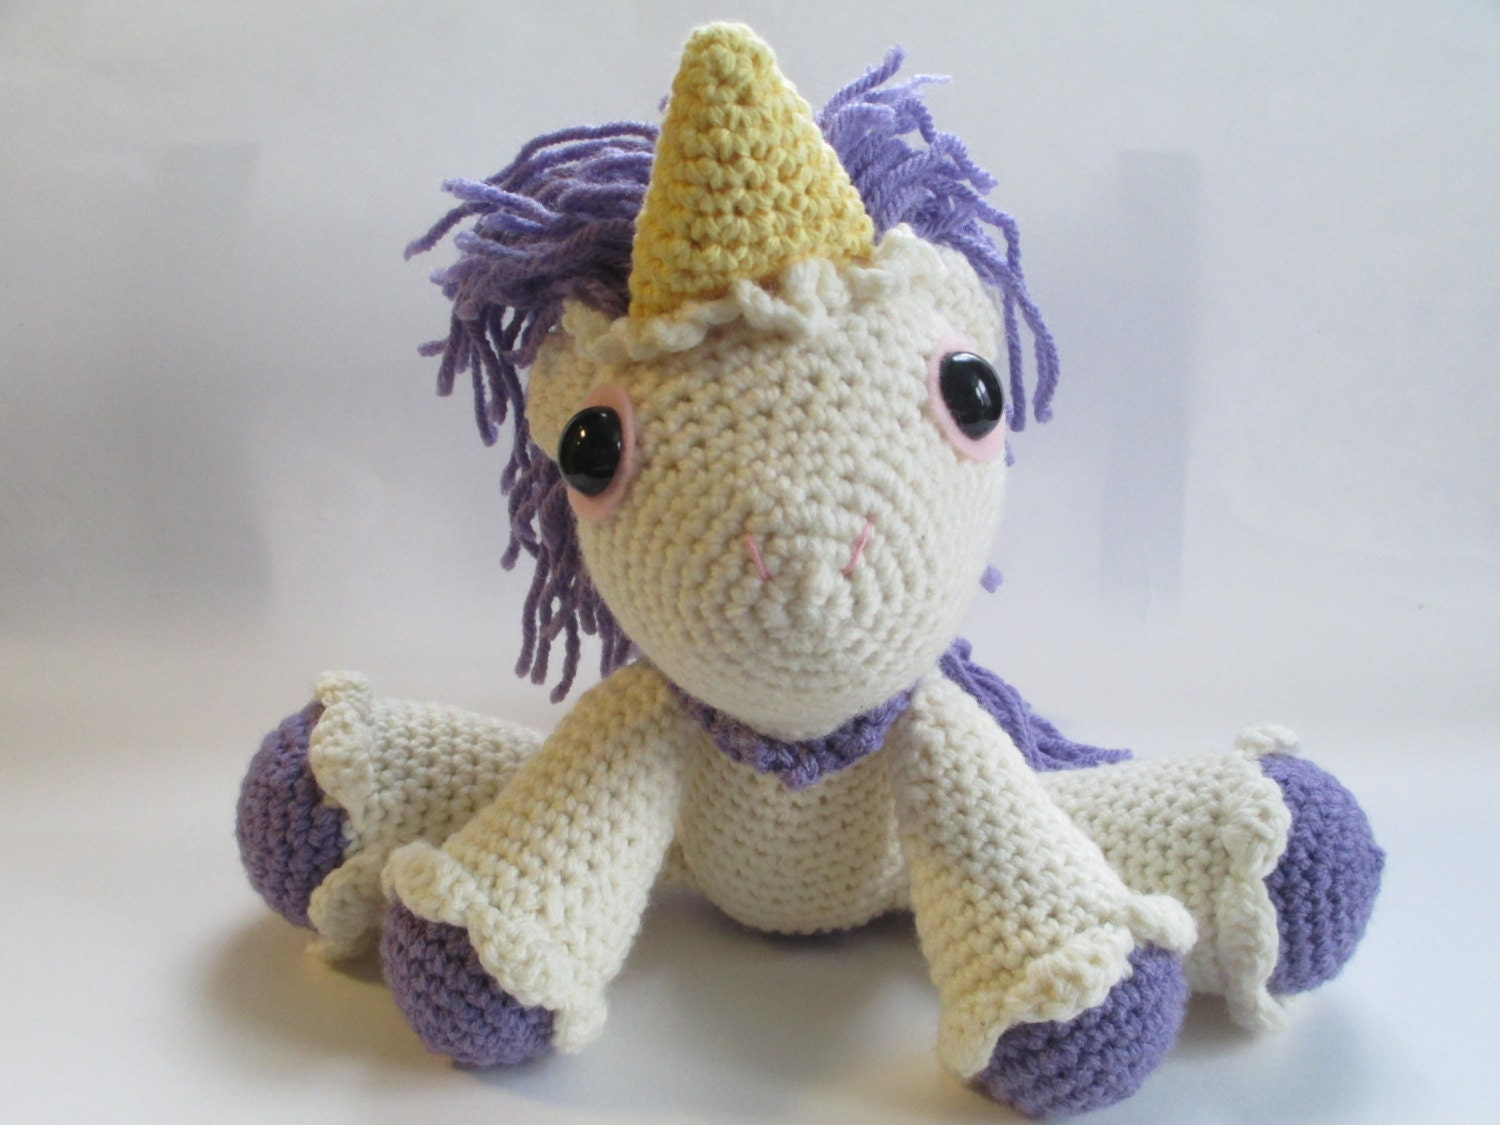 Crochet Unicorn Doll : Unicorn Amigurumi Crochet Stuffed Toy by NotJust4Grannys on Etsy